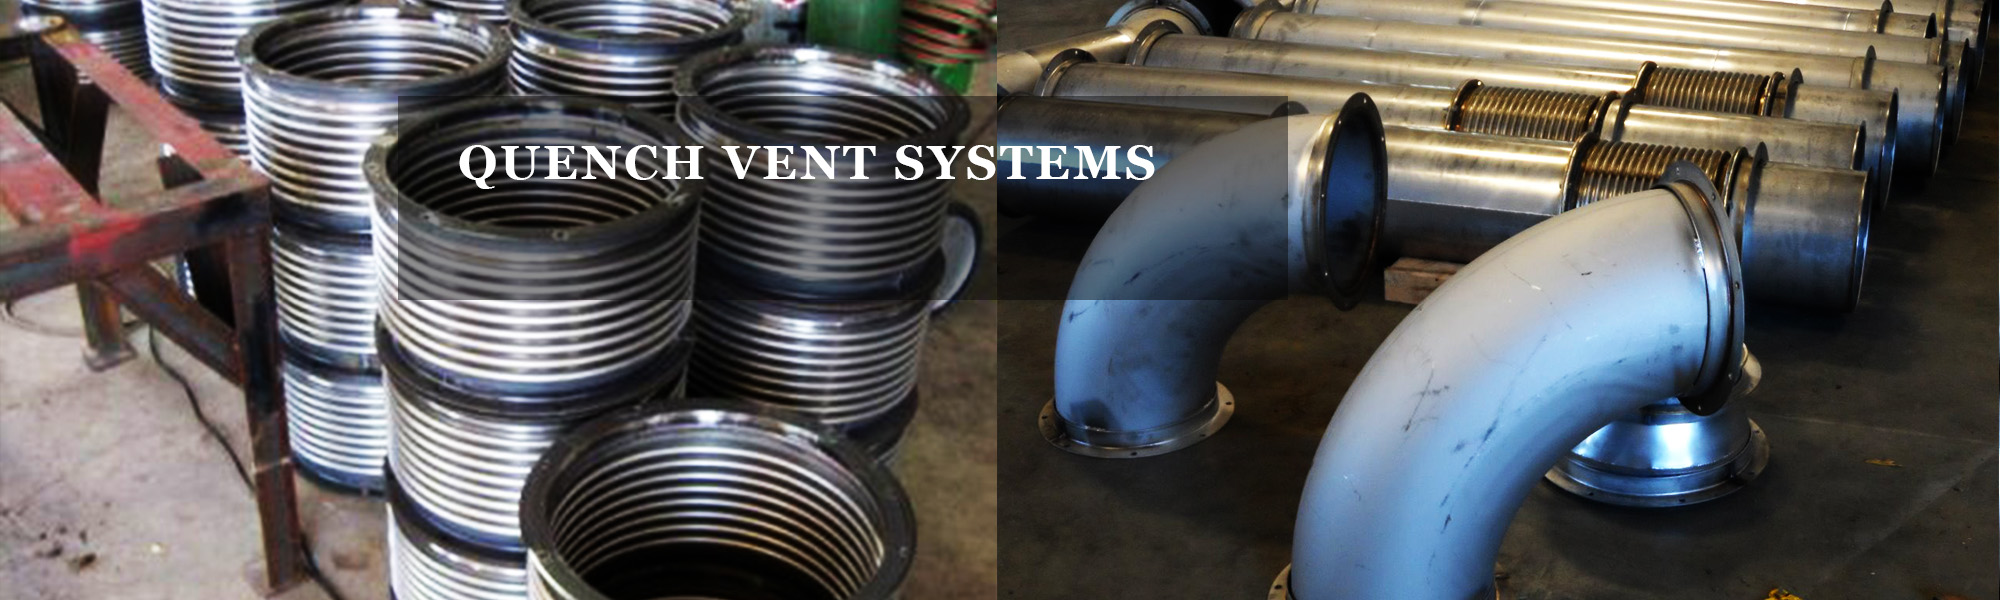 quench vent fabrication